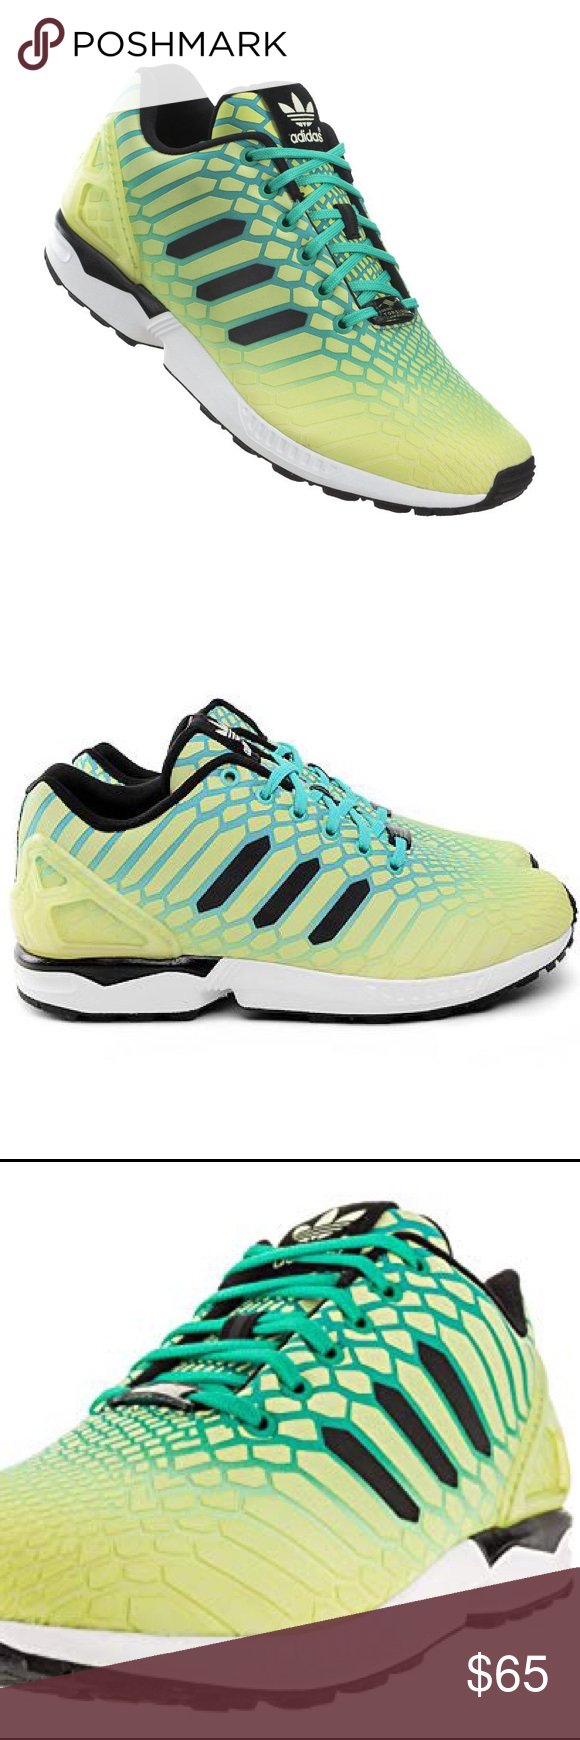 88dc3e8b2 Adidas ZX Flux Torsion Men s Sneakers Reflective Brand new in the box Men s  Adidas ZX Flux Torsion Frozen Yellow Glowing reflective sneakers.